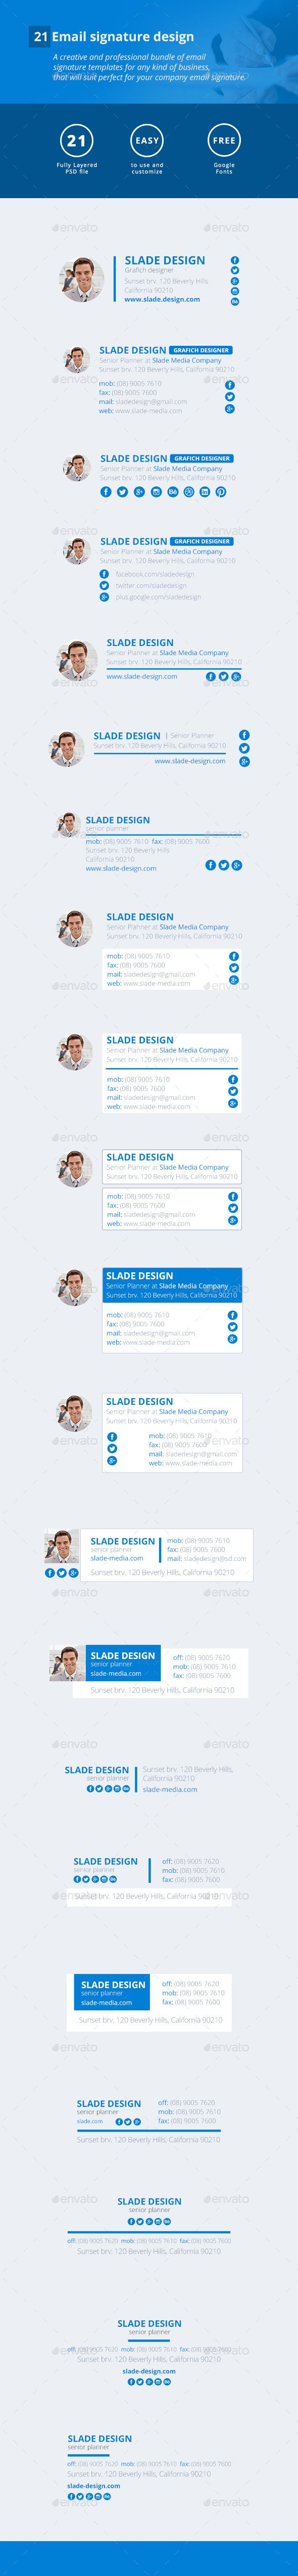 21 Email Signature Design by SladeDesign Is the super clean, modern and professional, carefully crafted A creative and professional bundle of email signature templates for